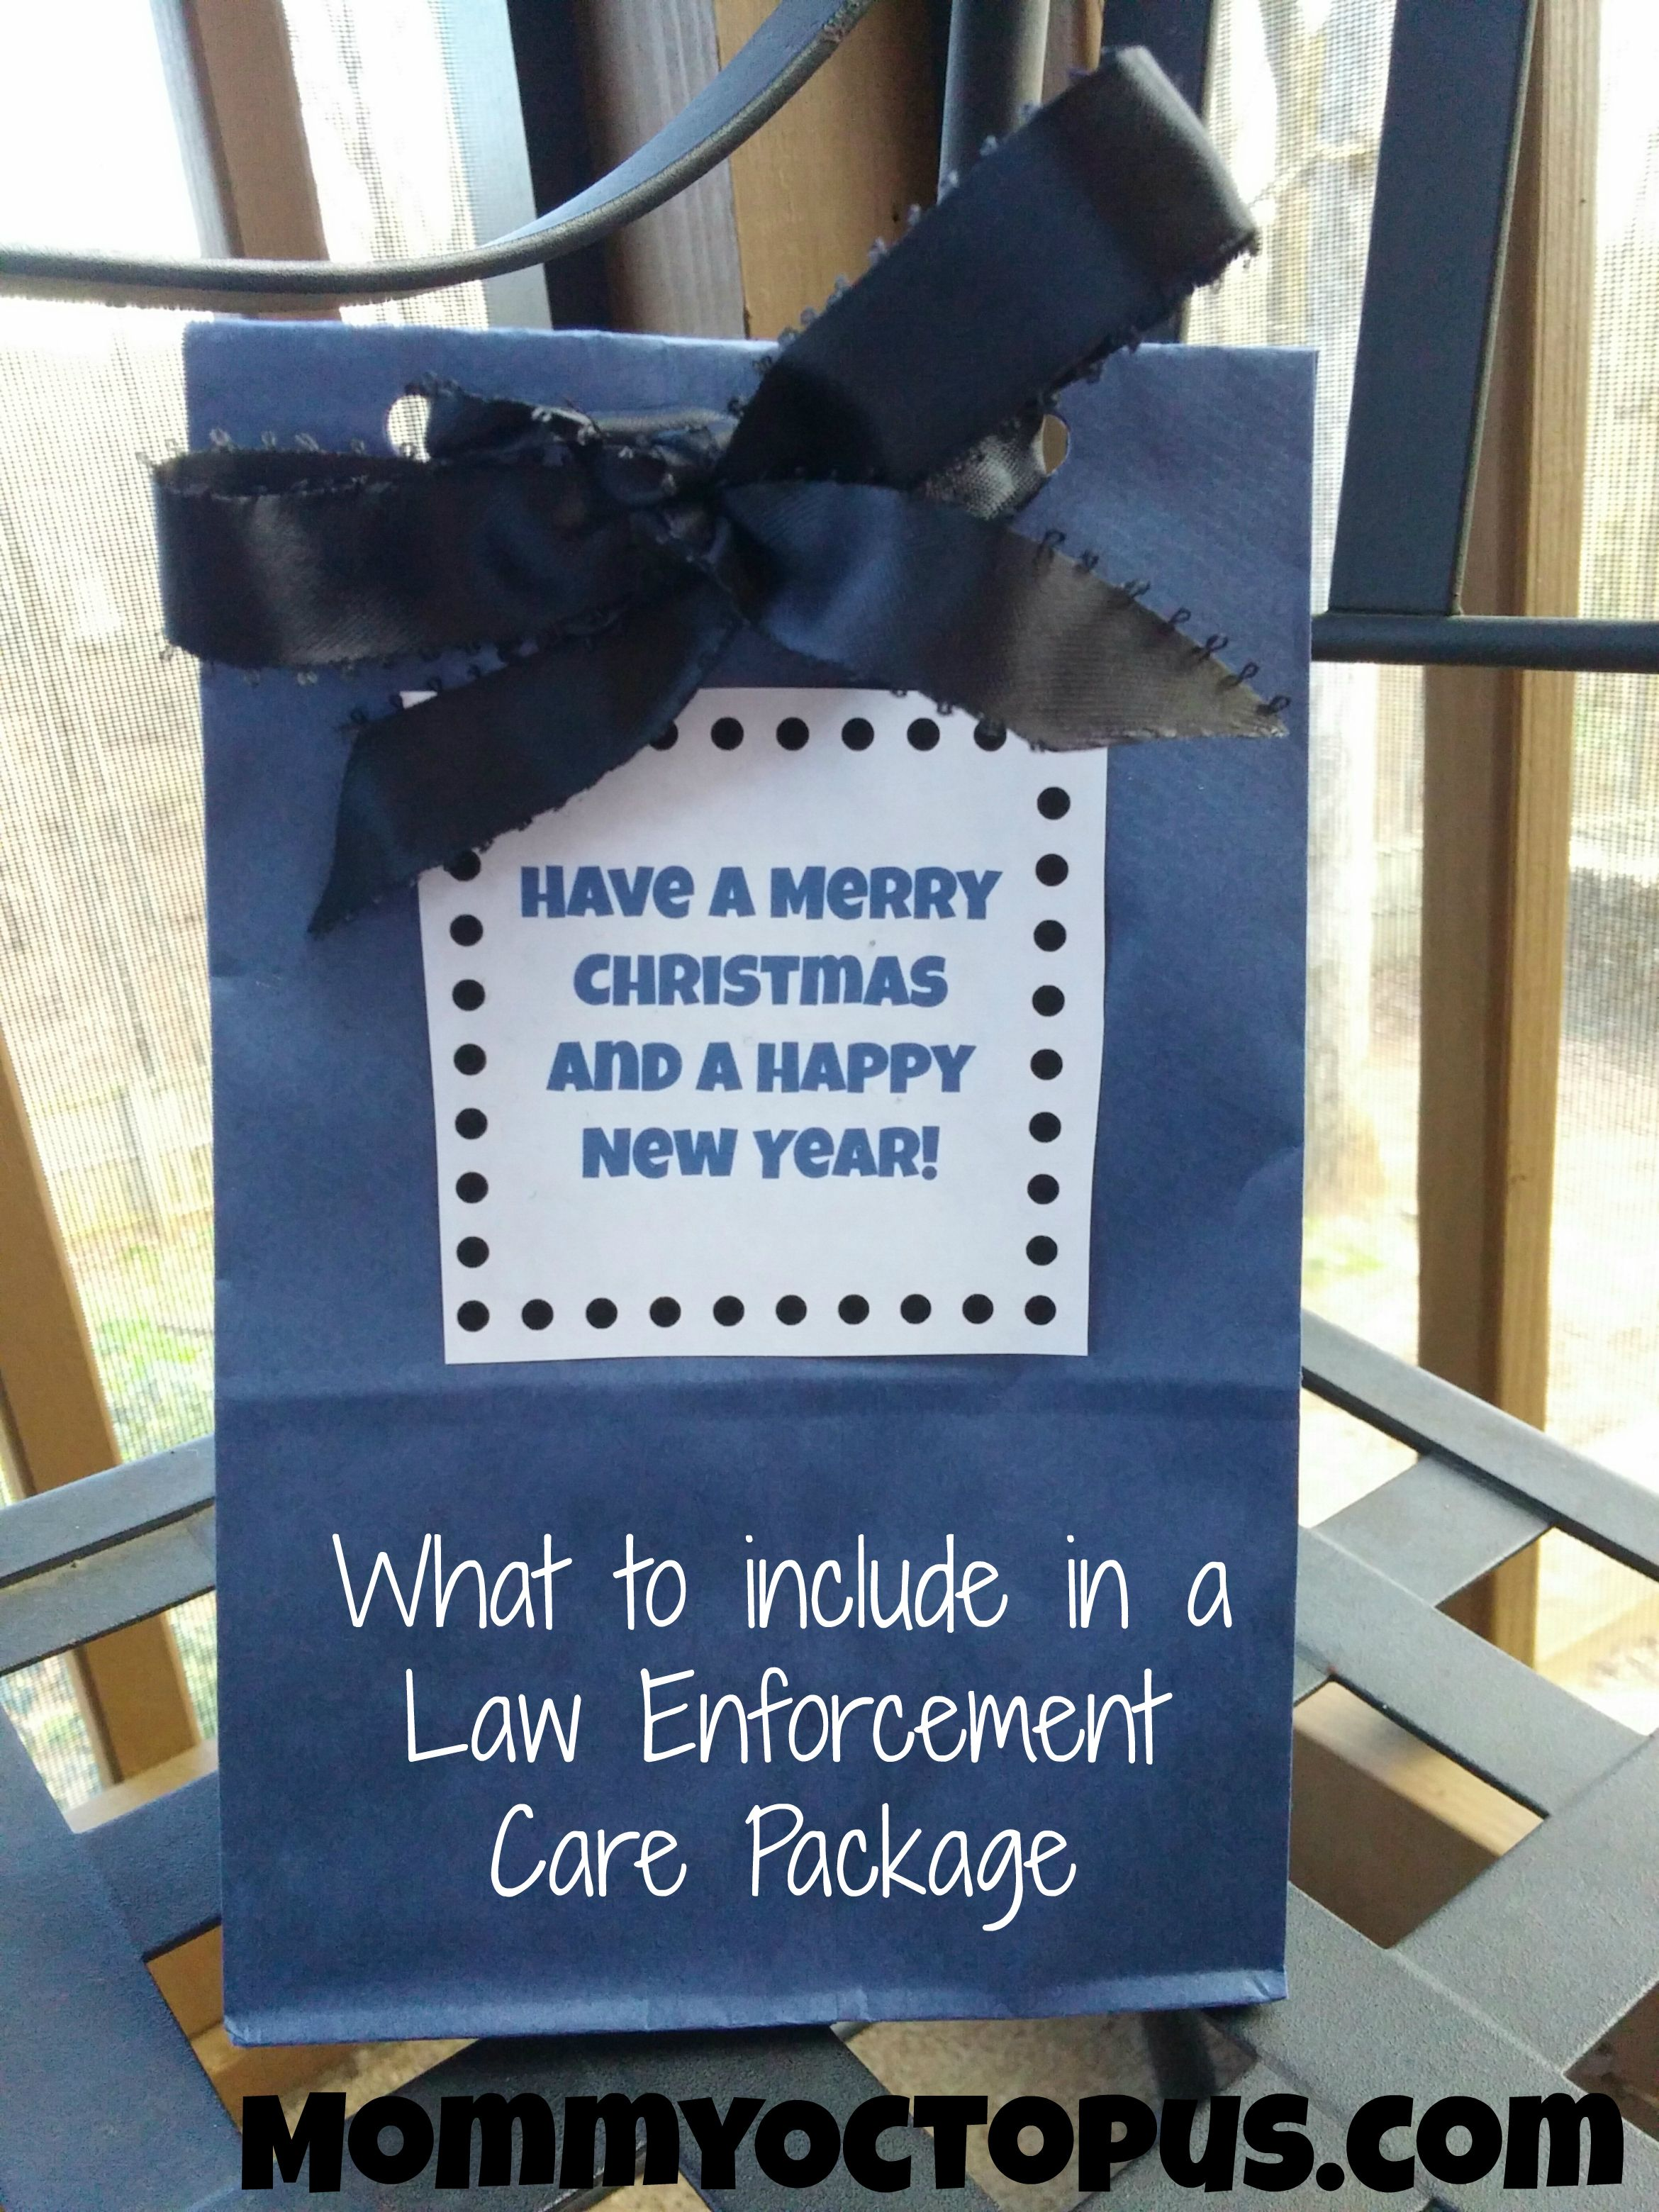 What to include in a Law Enforcement Care Package Christmas Gifts For Family Inexpensive Creative & What to Include in Law Enforcement Care Package